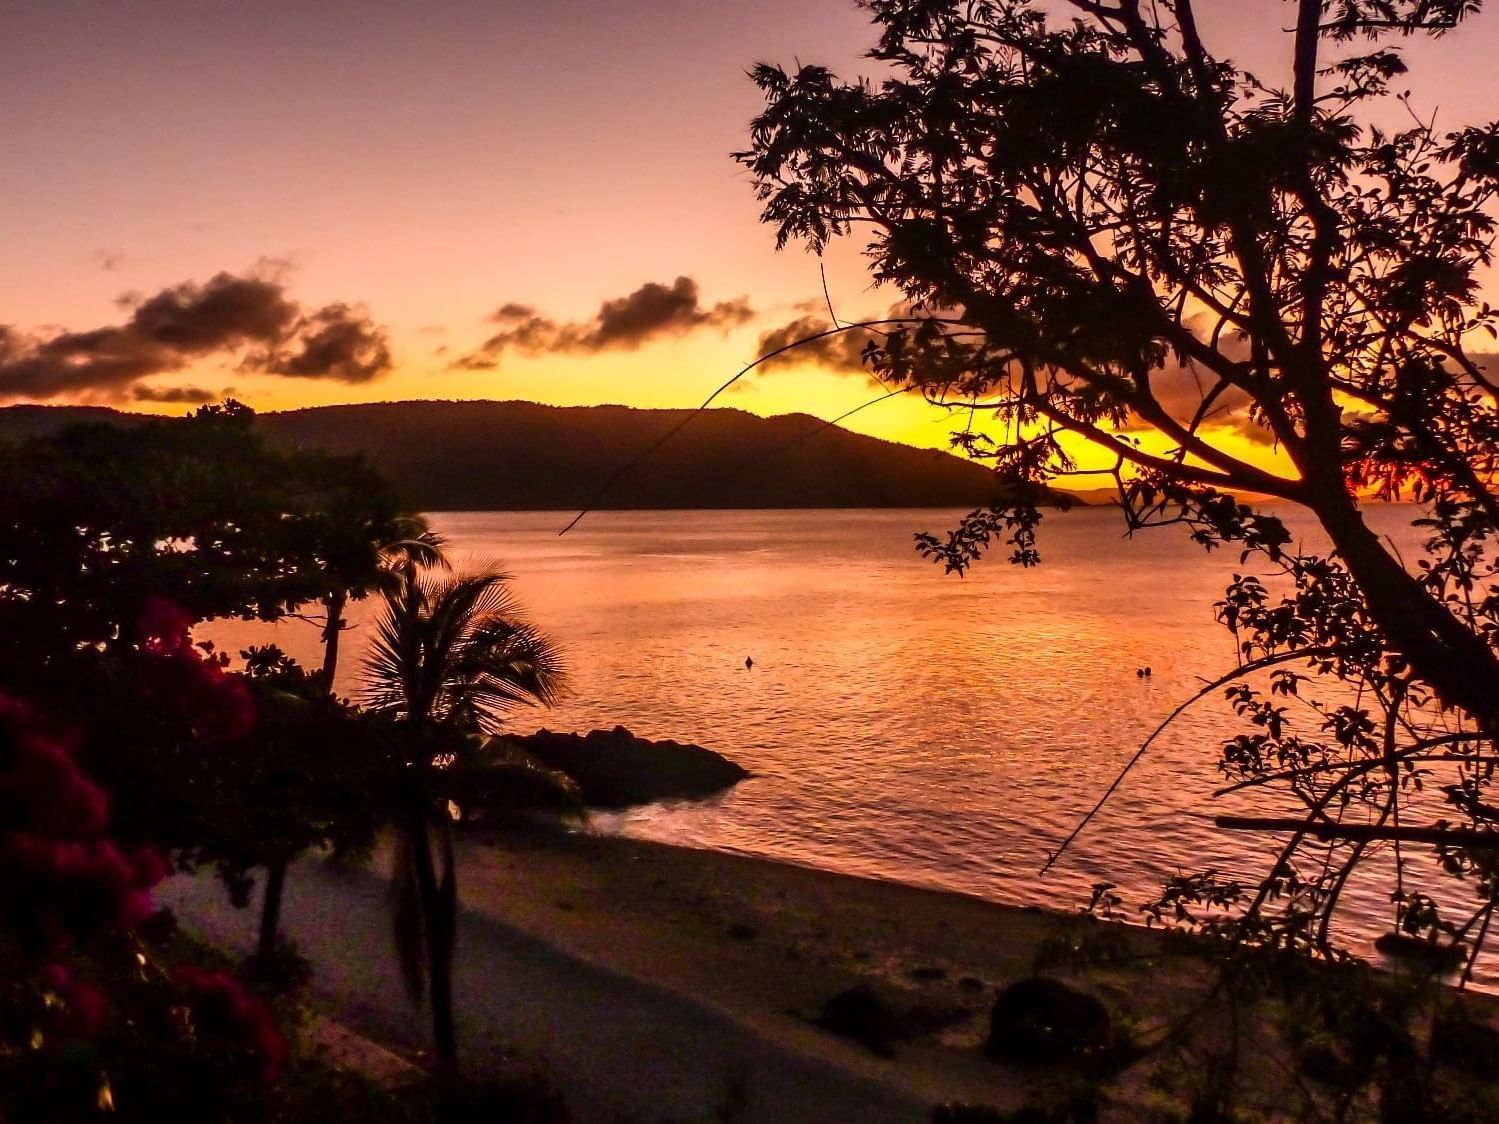 Sunset view from Lovers cove bar at Daydream Island Resort